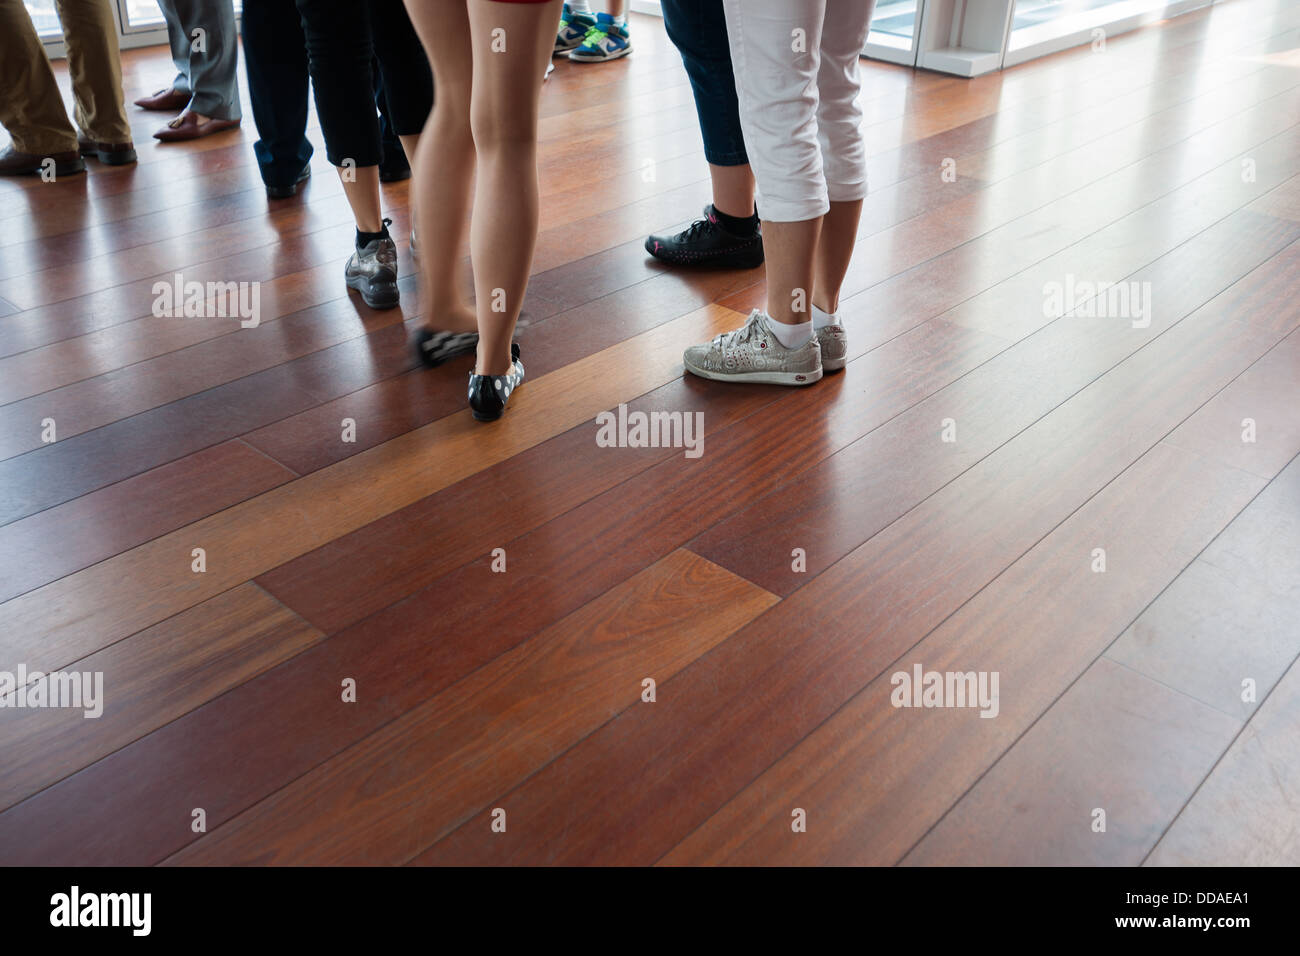 LEGS, PEOPLE STANDING AROUND AT A FUNCTION ON WOODEN FLOOR. ONLY LEGS AND FEET CAN BE SEEN. - Stock Image